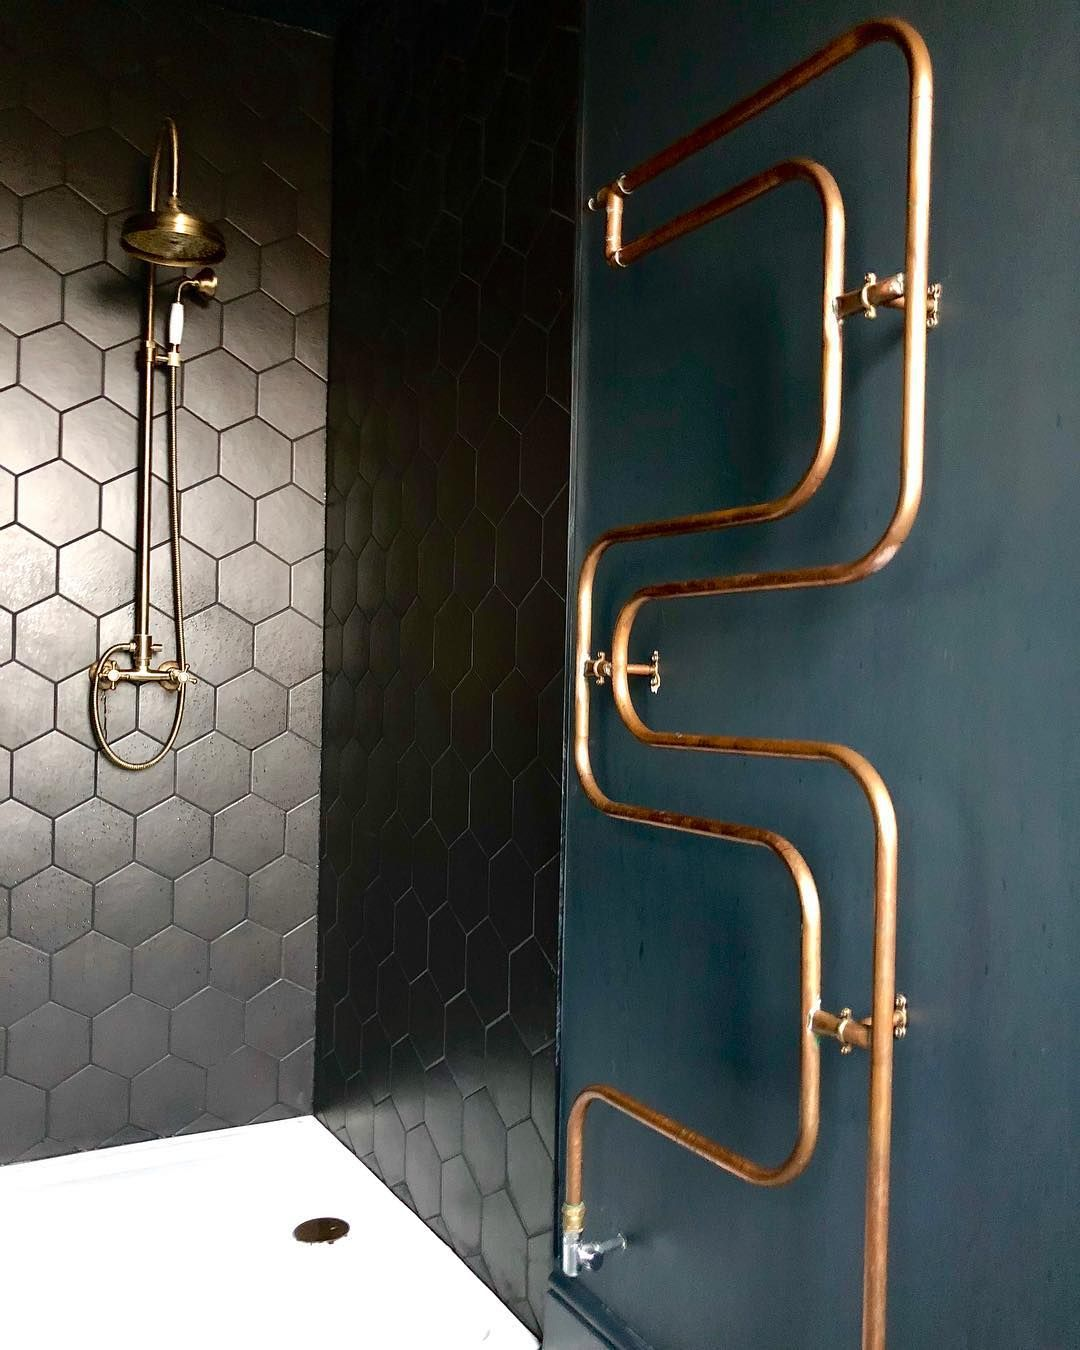 """Photo of Suszi Saunders on Instagram: """"A detail shot for you guys this morning. This lovely brass shower is by @bespoketaps and the copper pipe radiator was made by our amazing…"""""""